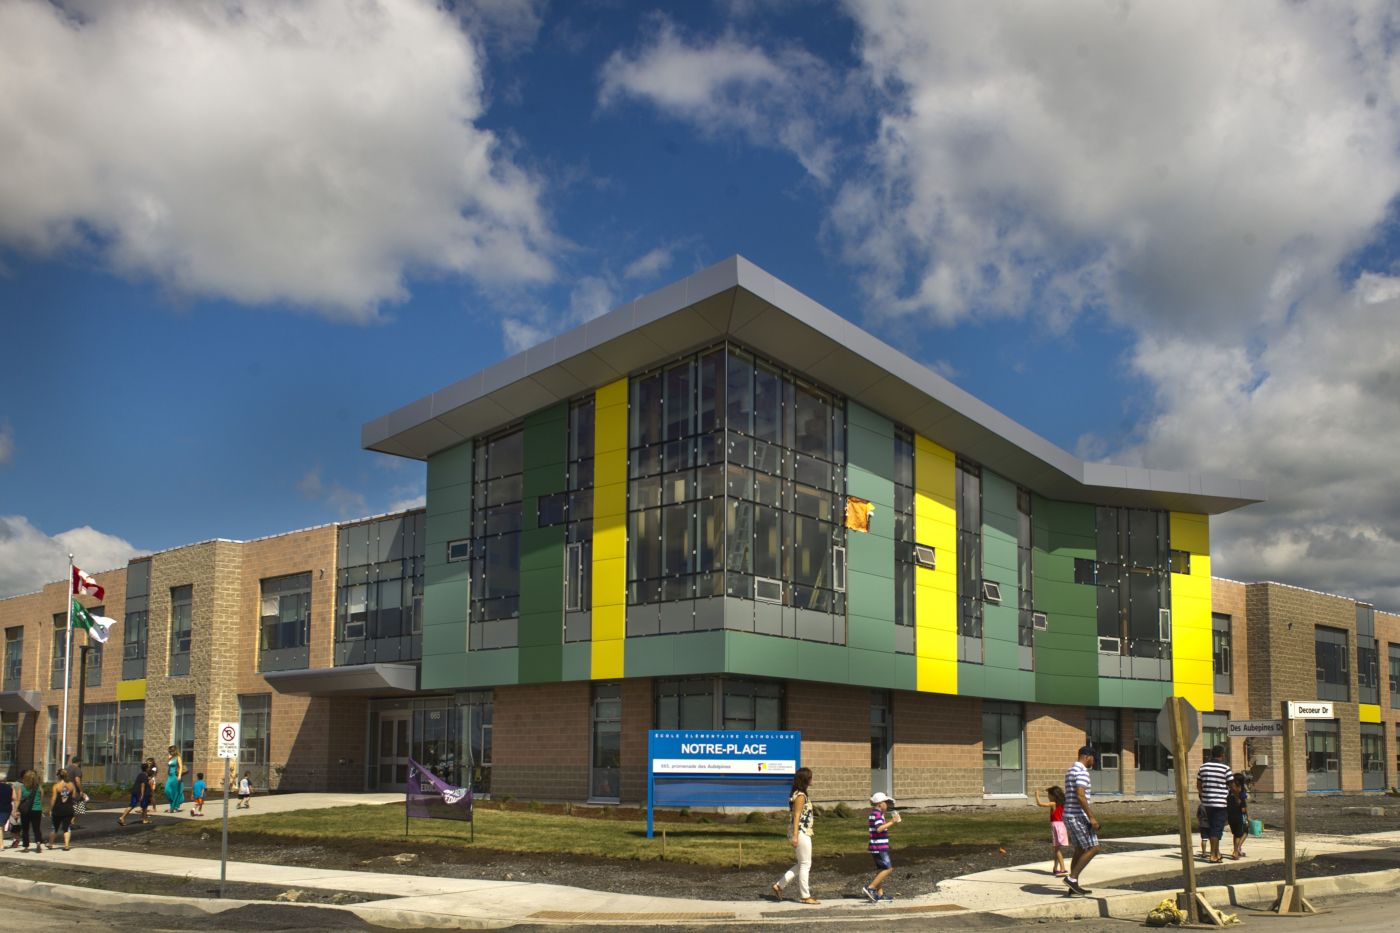 Colour photograph of a two-storey brick and glass building with coloured sections surrounding the glass. Children and parents walk around the building. In the centre, a blue and white sign bearing the name of the school.